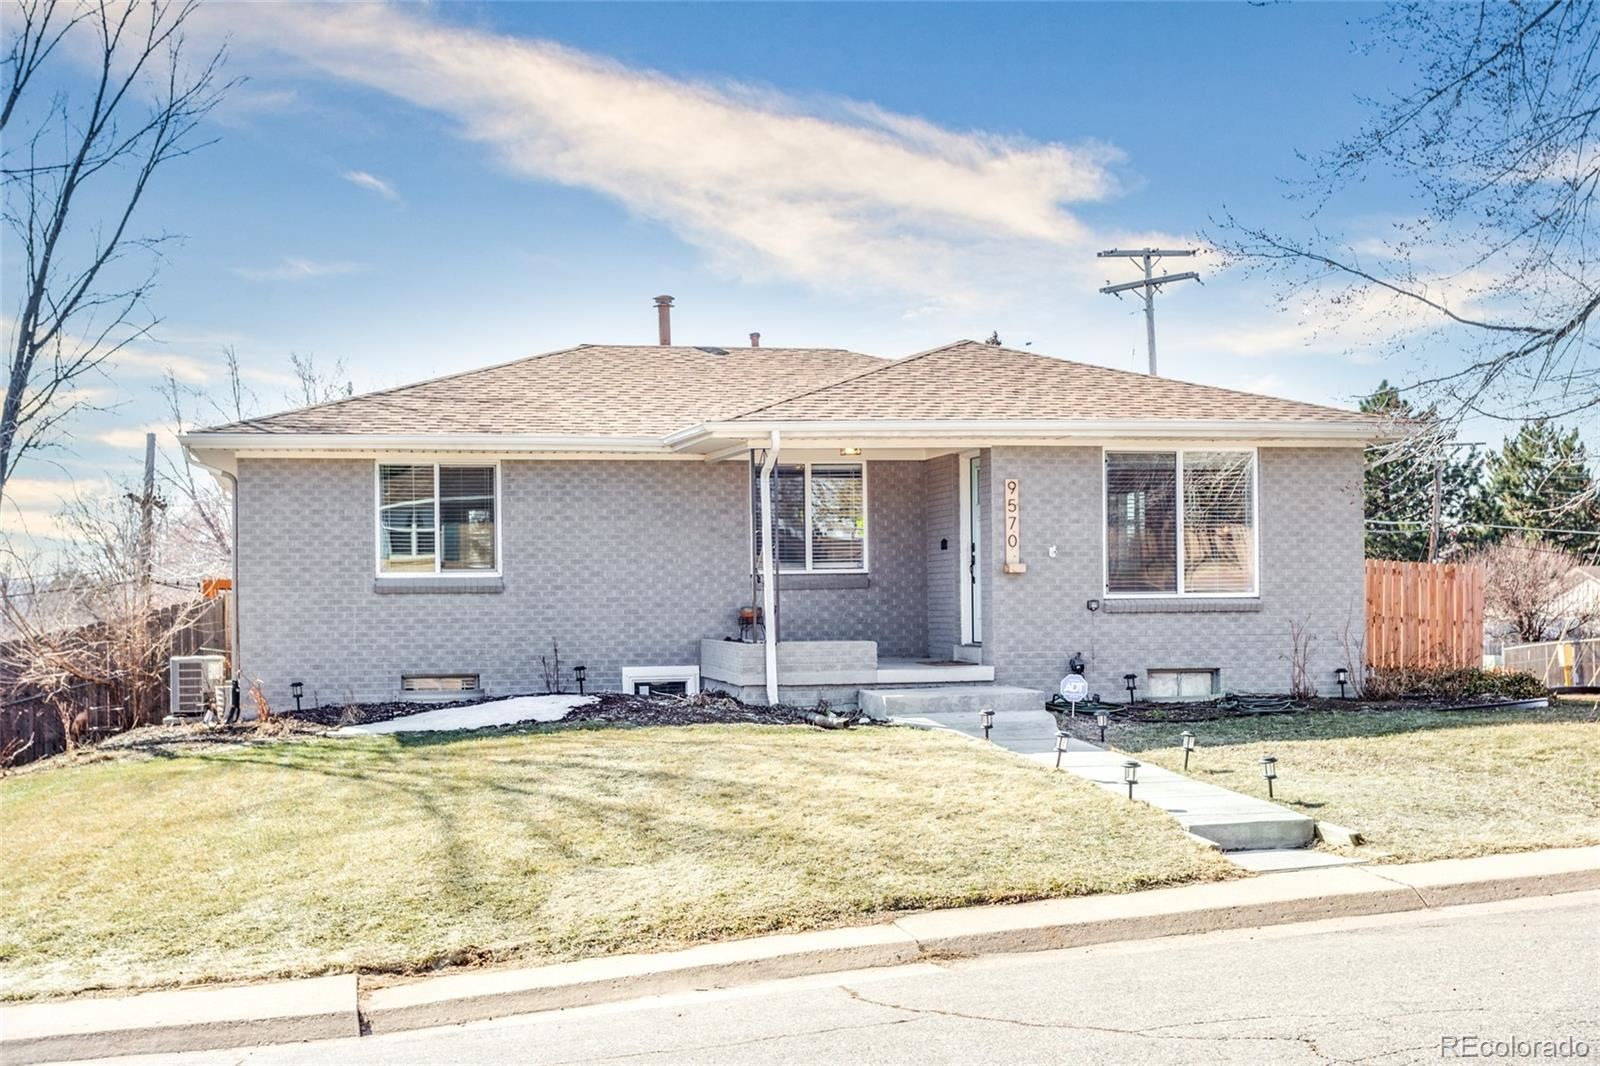 9570 W 54th Place, Arvada, CO 80002 - #: 4969690